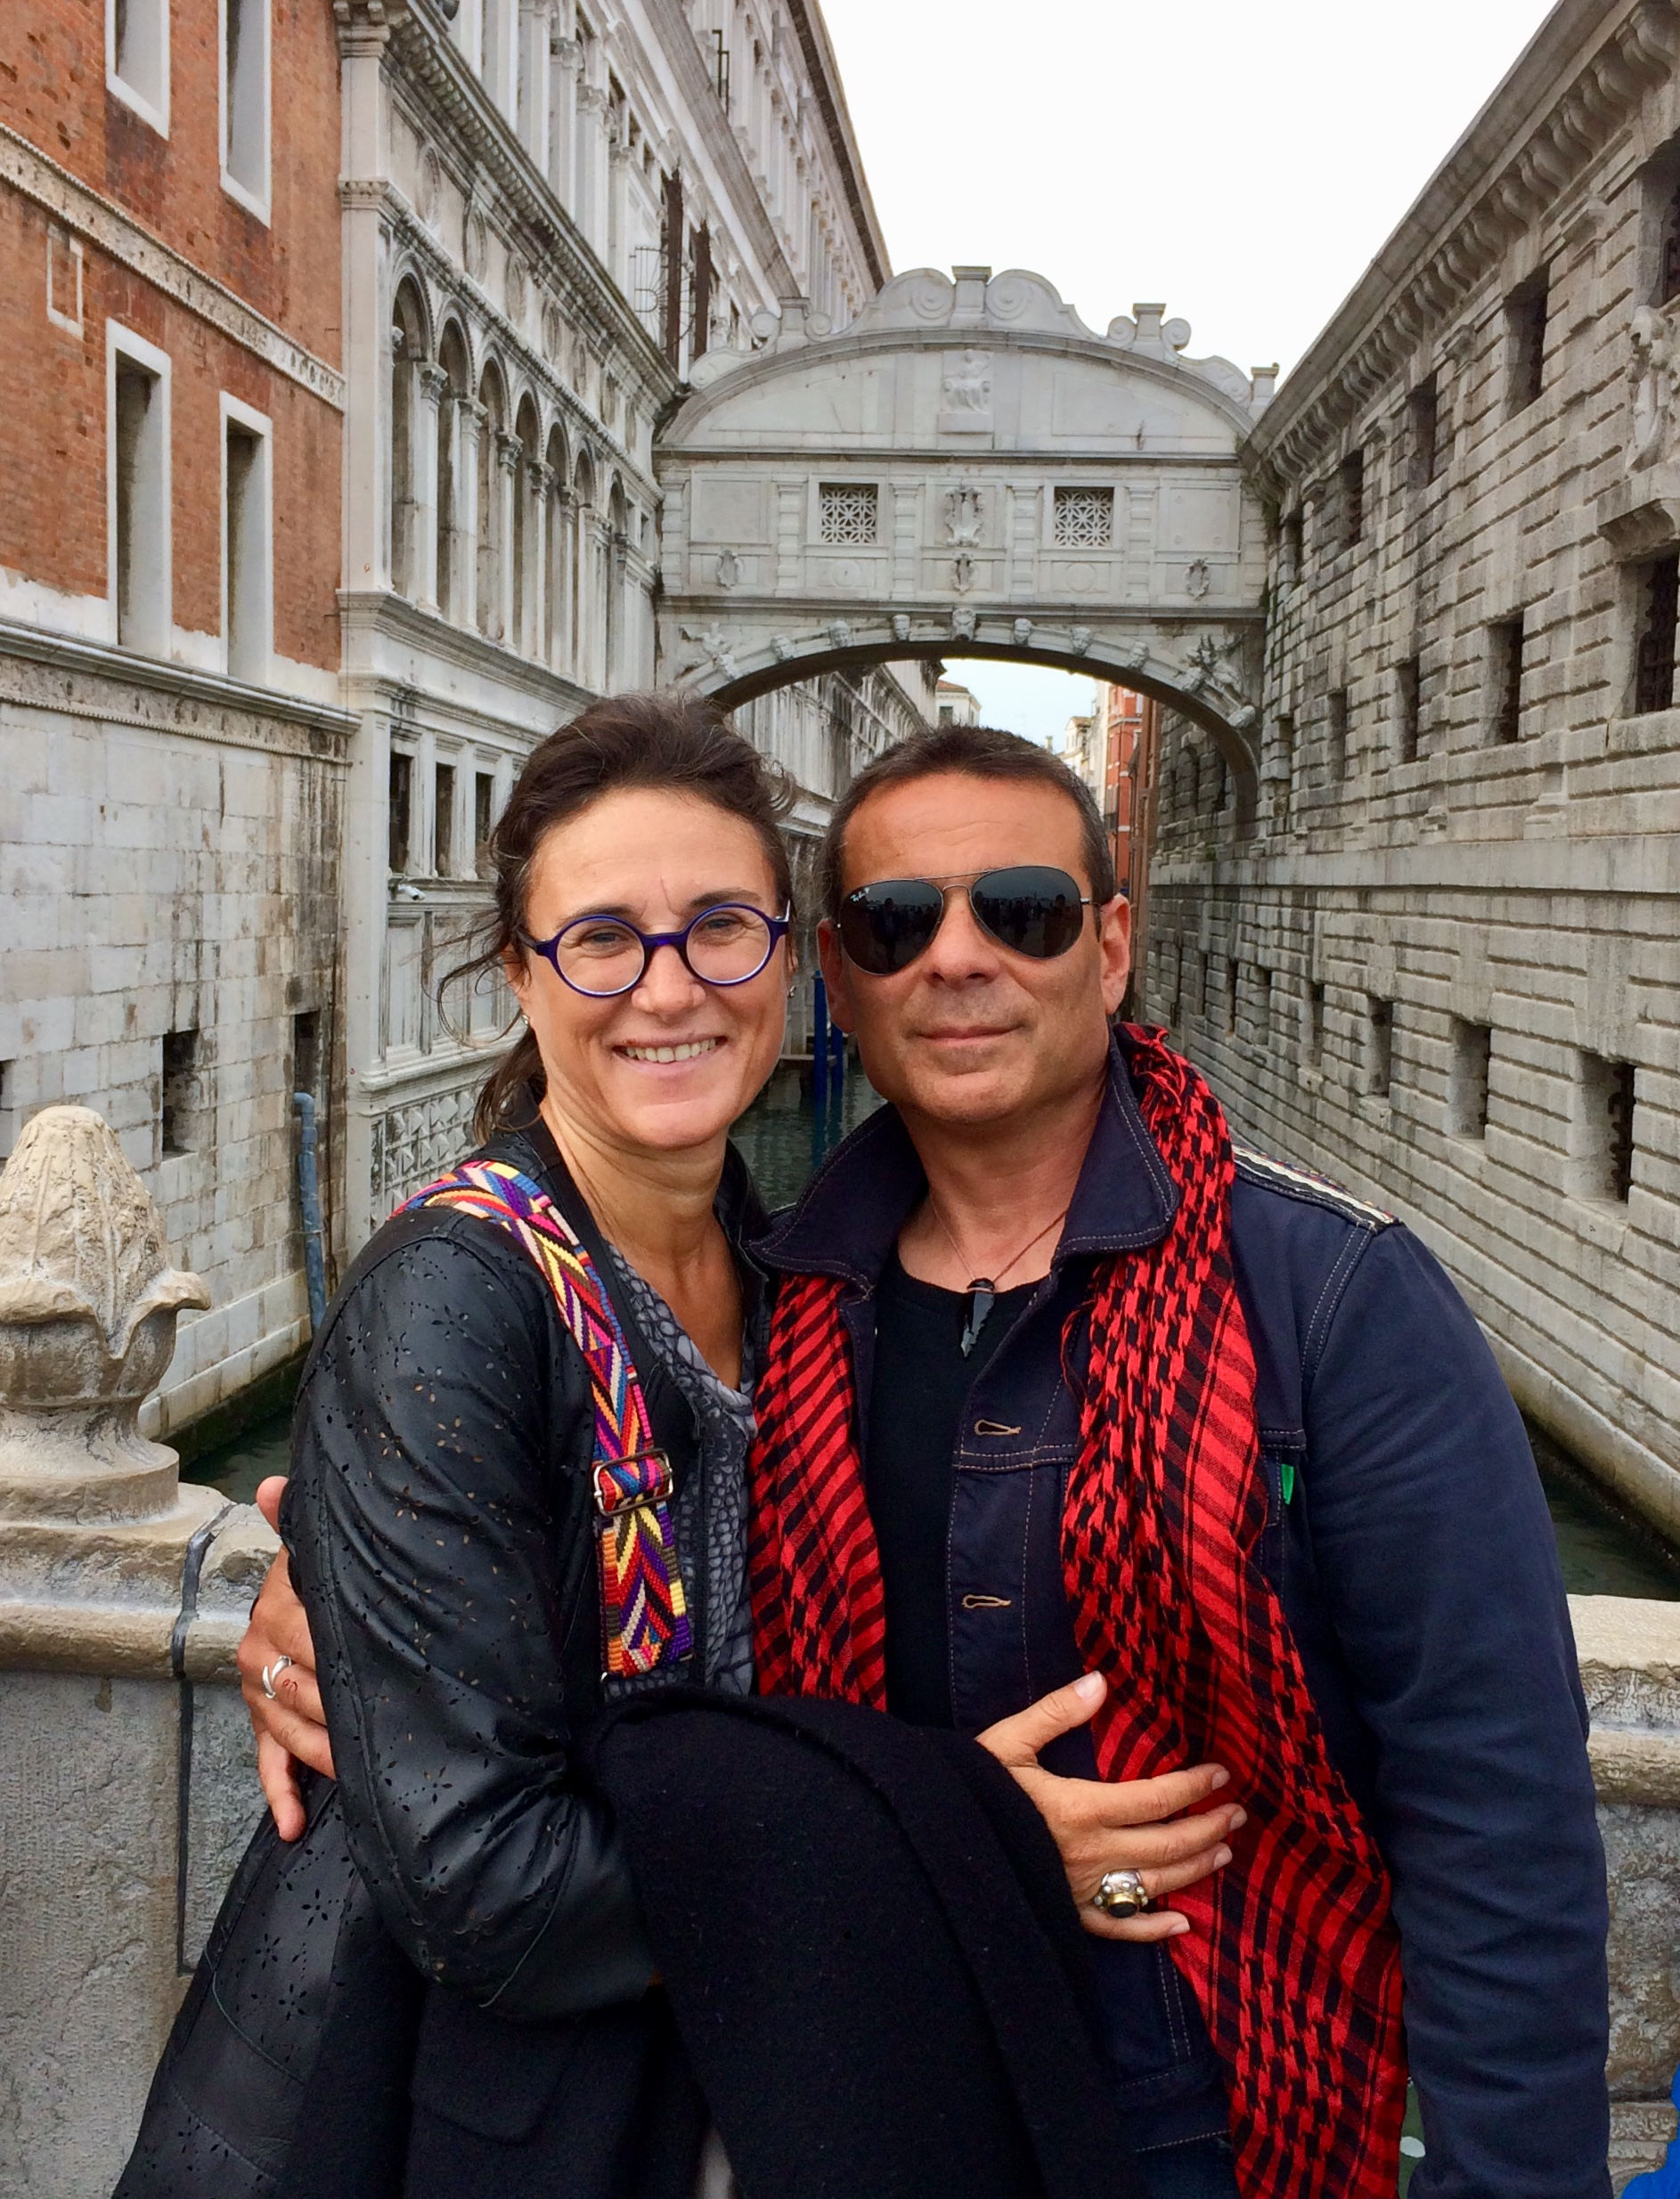 Isabelle derigo from switzerland Salvatore Cultrera from Italy Both living in Greece